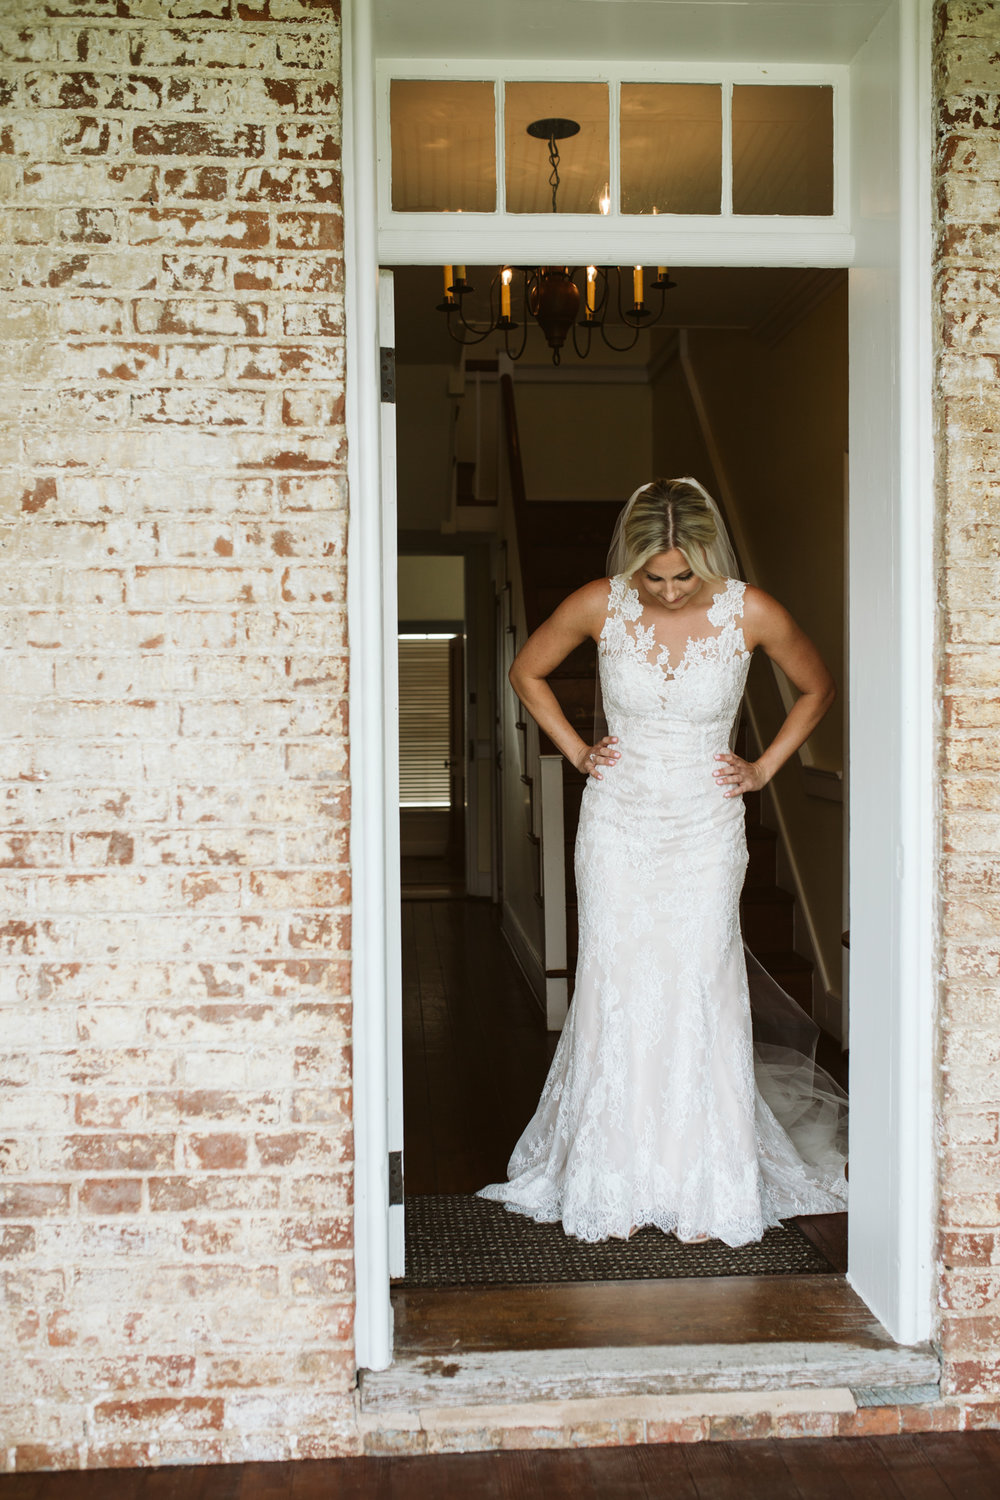 rebeccaburtphotography.walkersoverlook.frederickmarylandweddingphotographer-23.JPG